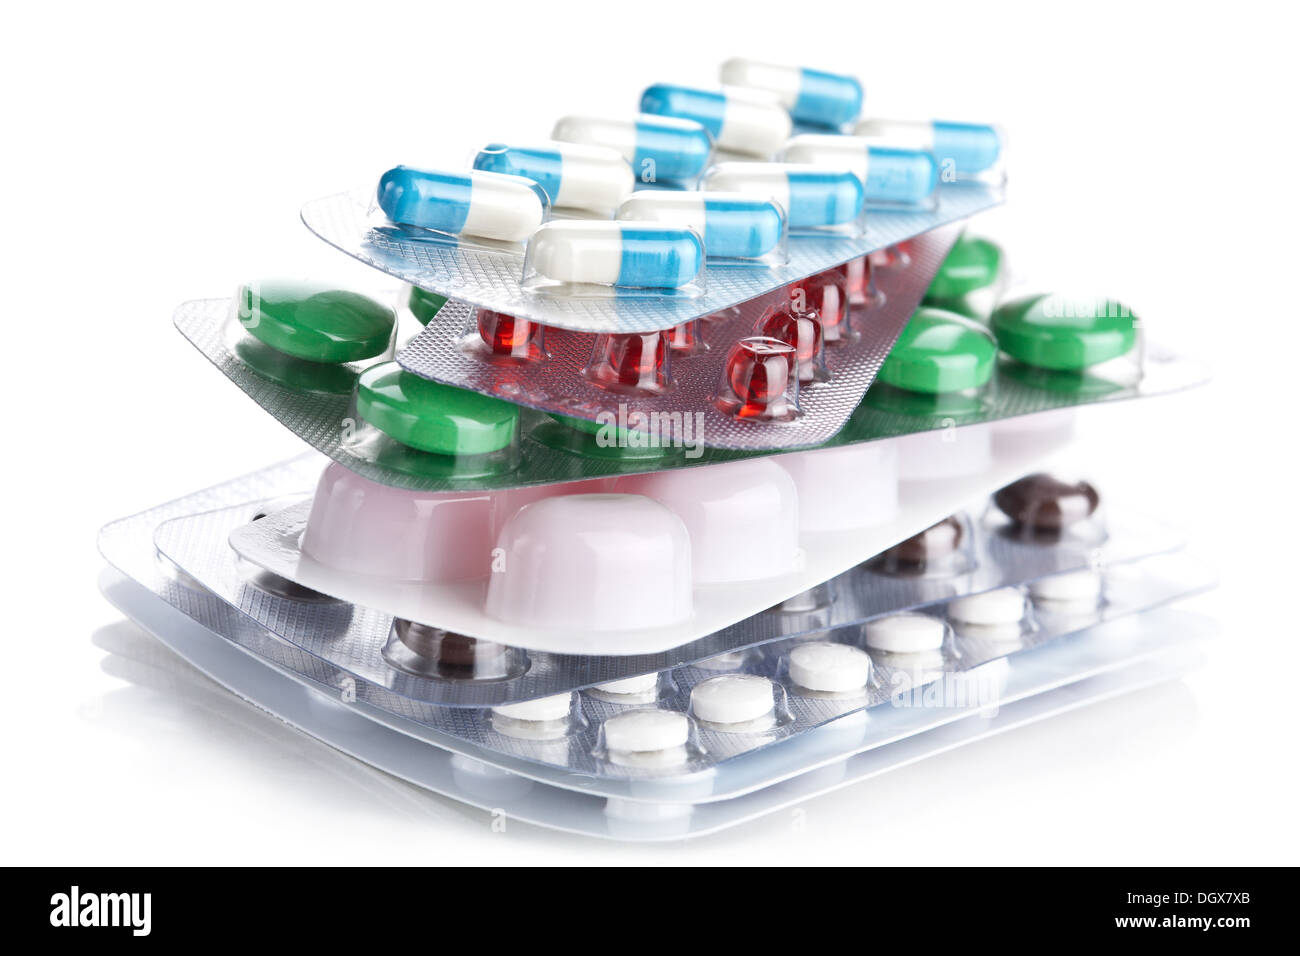 stack of pill packs isolated - Stock Image